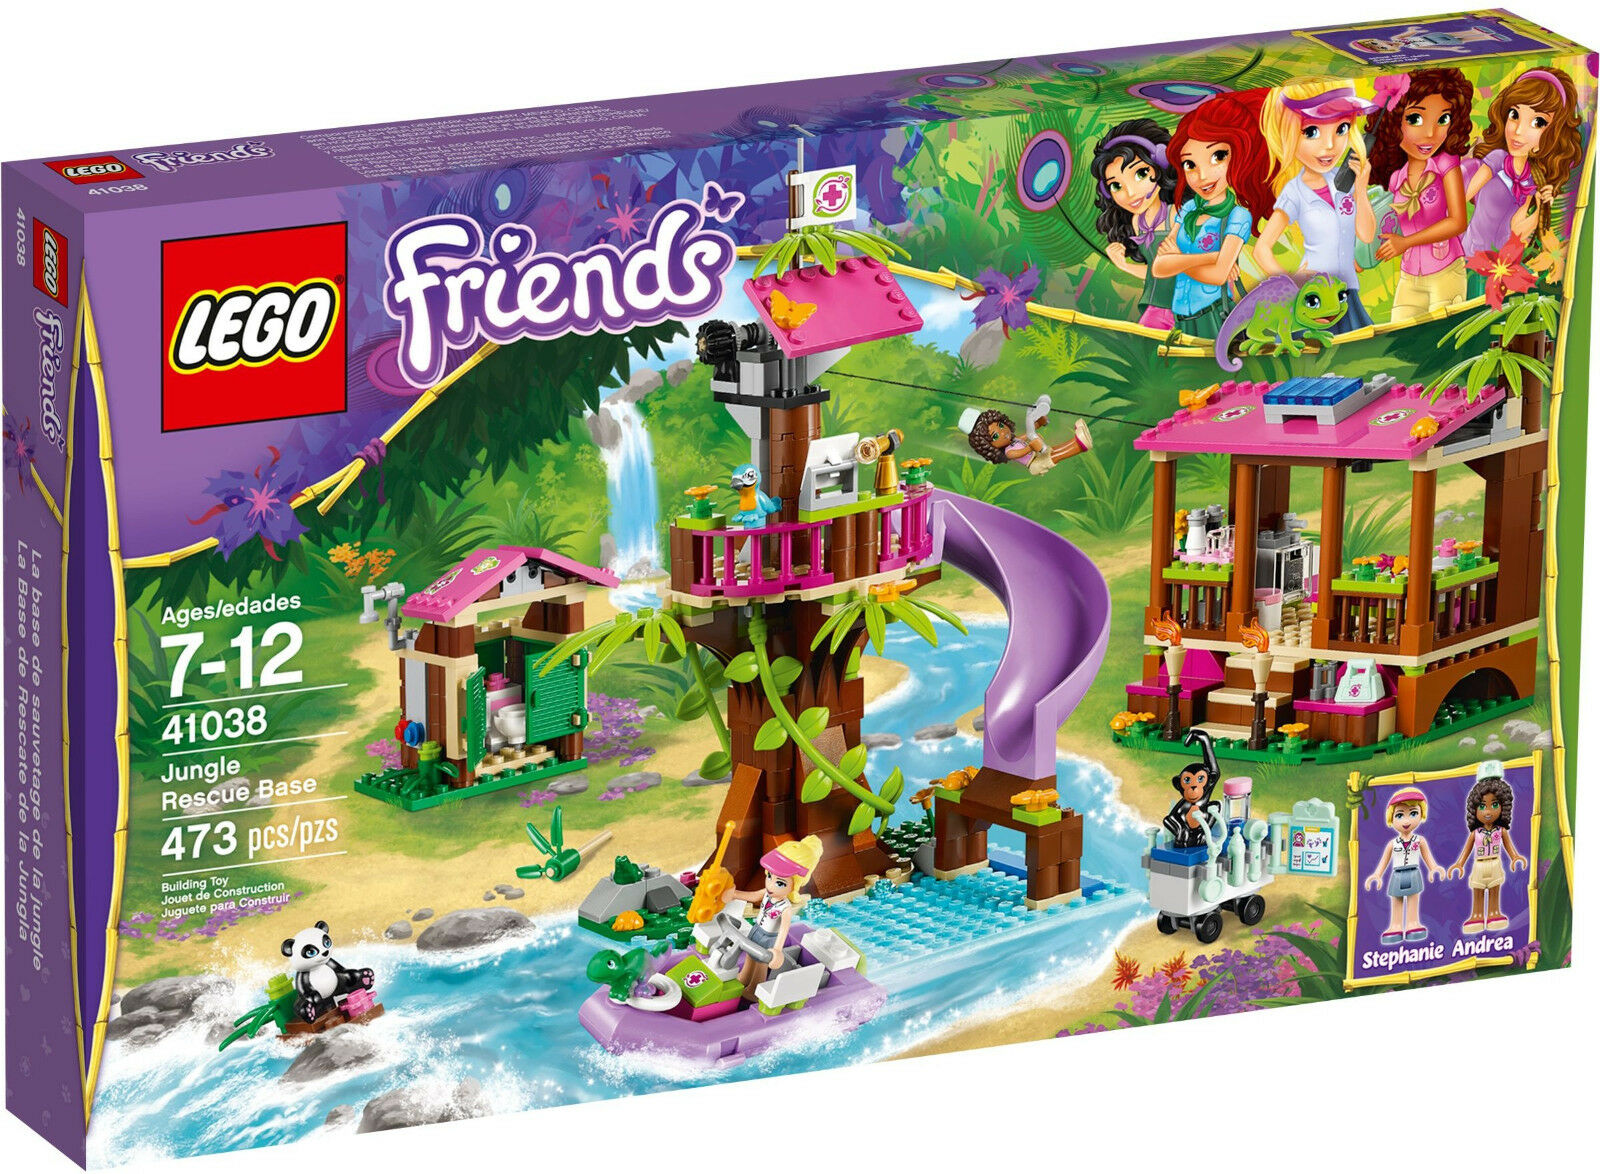 Lego 41038 Friends Jungle Rescue Base  Sealed Box